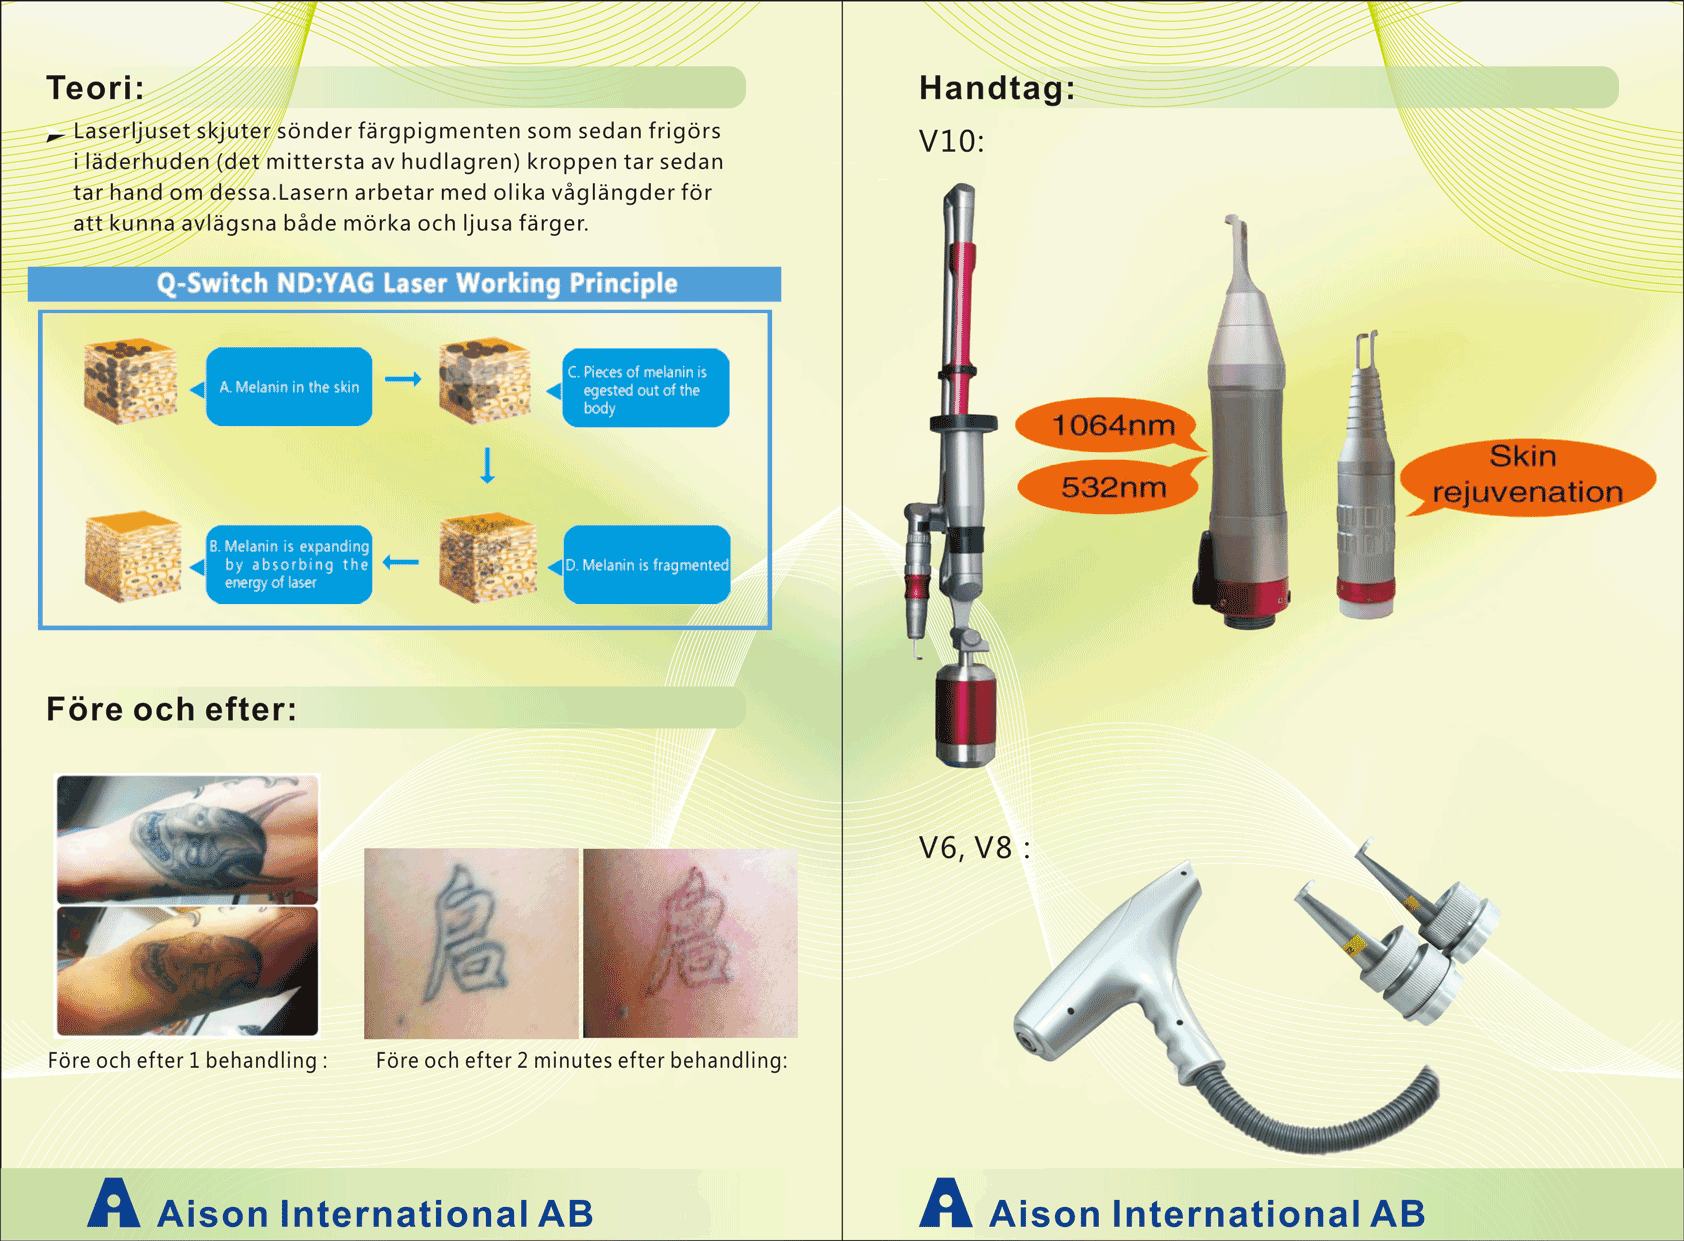 Tattoo removal laser v6 aison international ab for Tattoo removal products